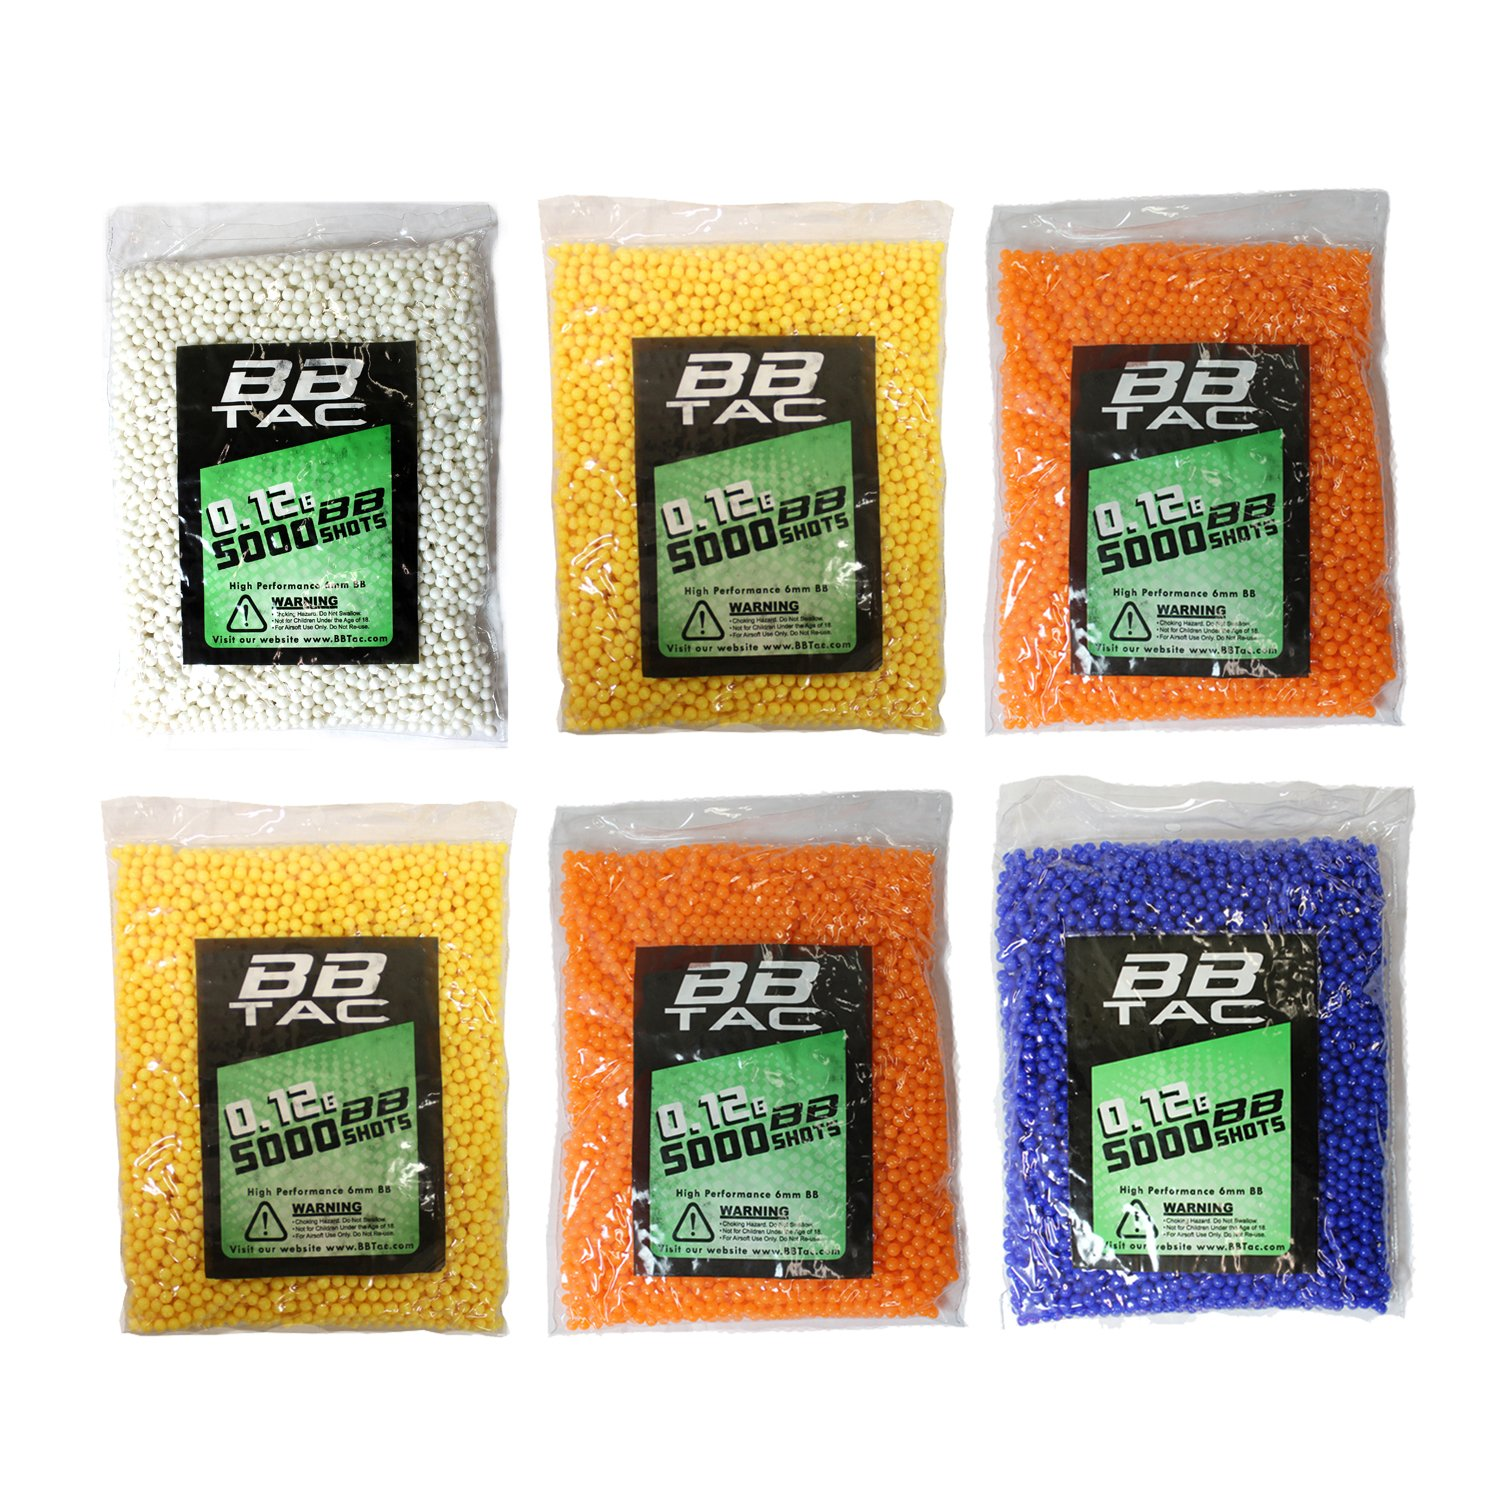 BBTac Airsoft BBs .12g Ammo 6mm (30,000 Round Bag, Multi Colors)